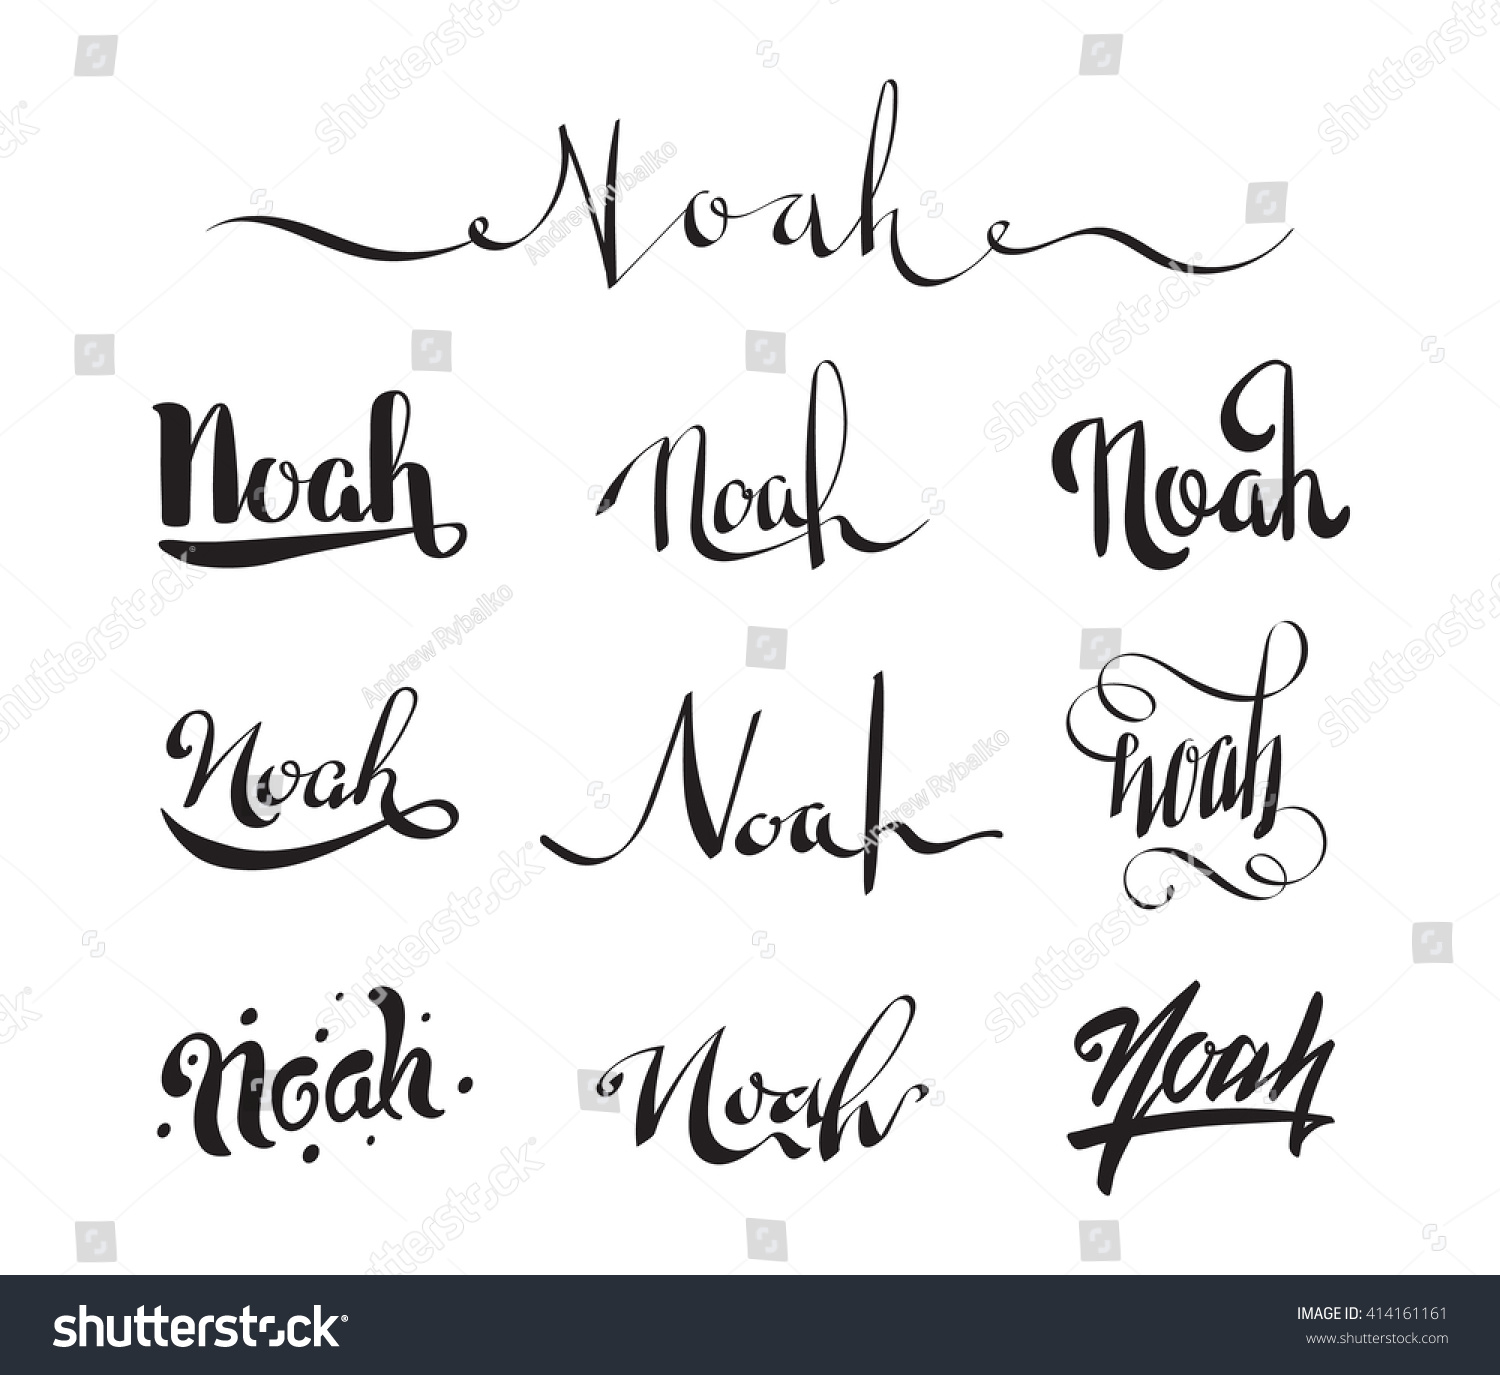 7f91f2a13b983 Personal name Noah. Vector handwritten calligraphy set. Handmade lettering  collection. Royalty Free Stock Photo by Andrew Rybalko